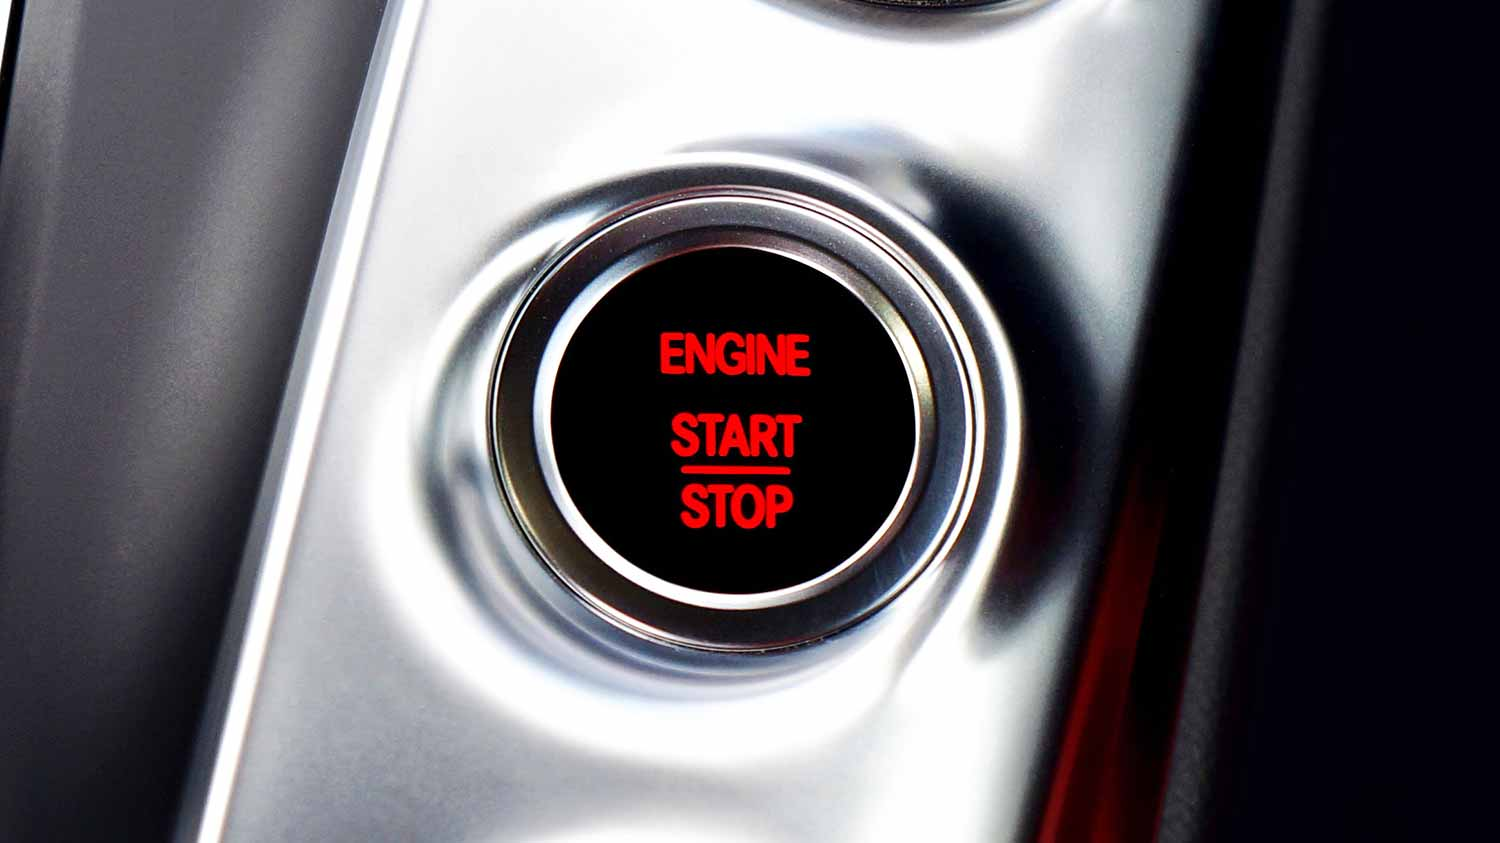 Entering the vehicle while it is running via remote start